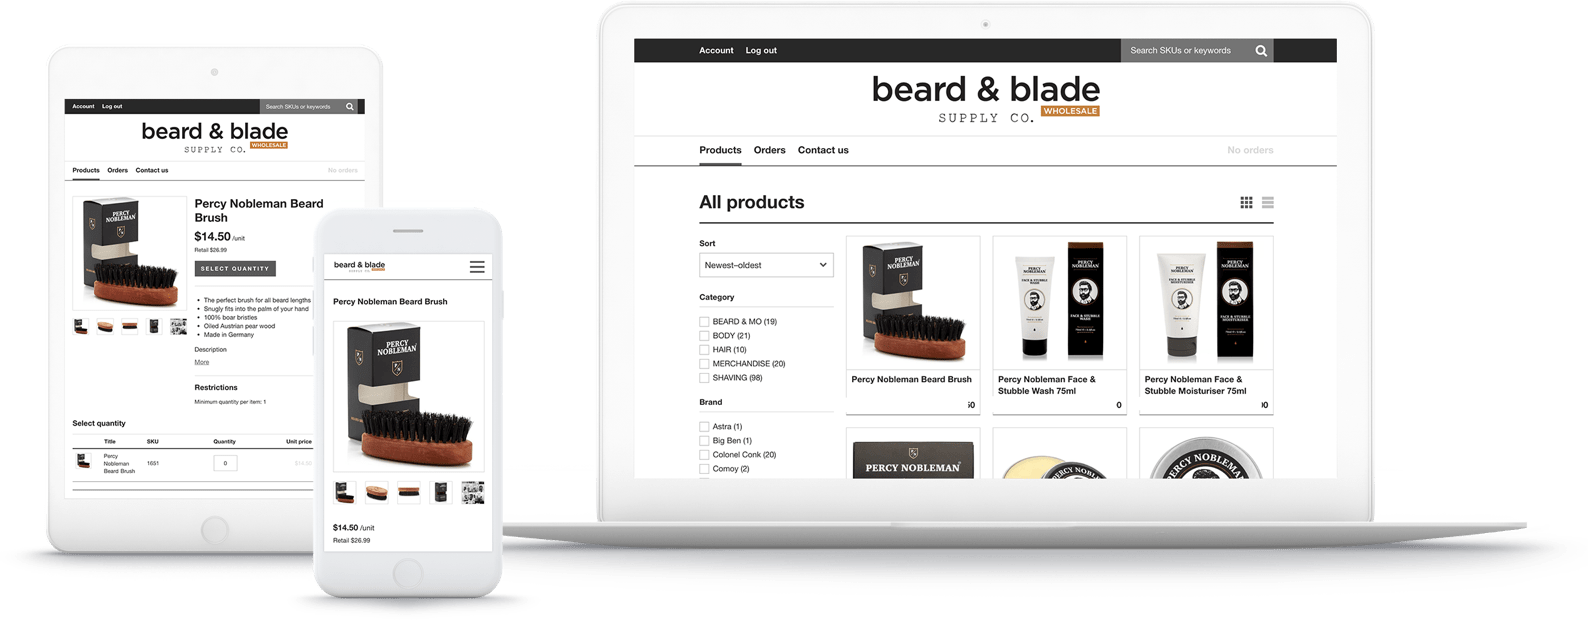 Beard & Blades B2B online store is mobile optimized